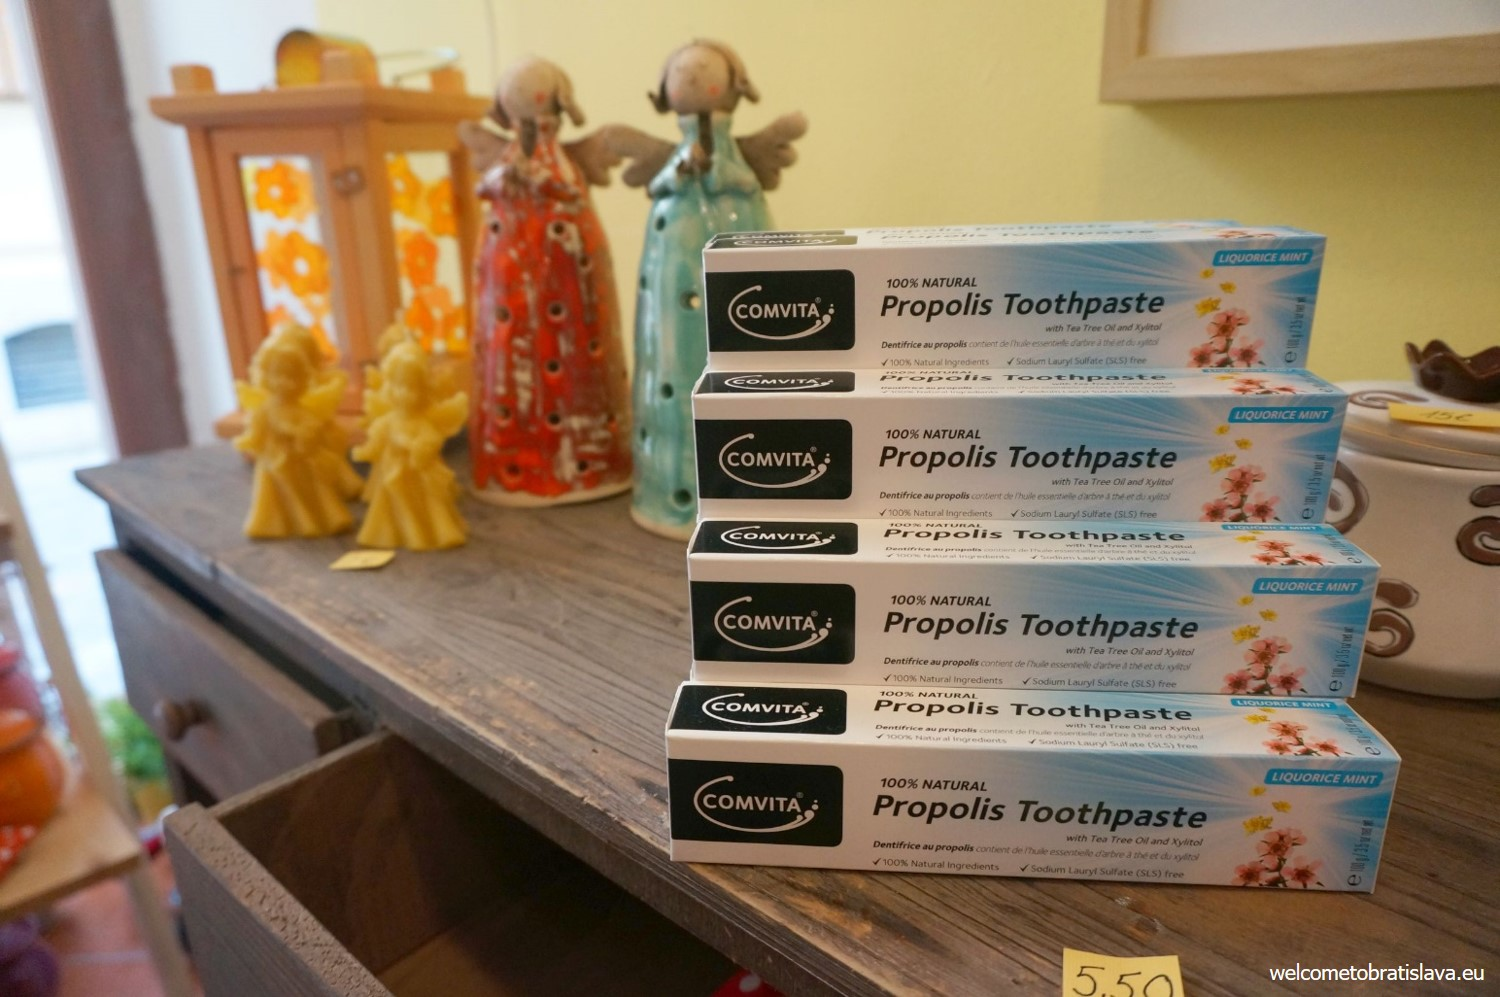 A special toothpaste with propolis – bee glue